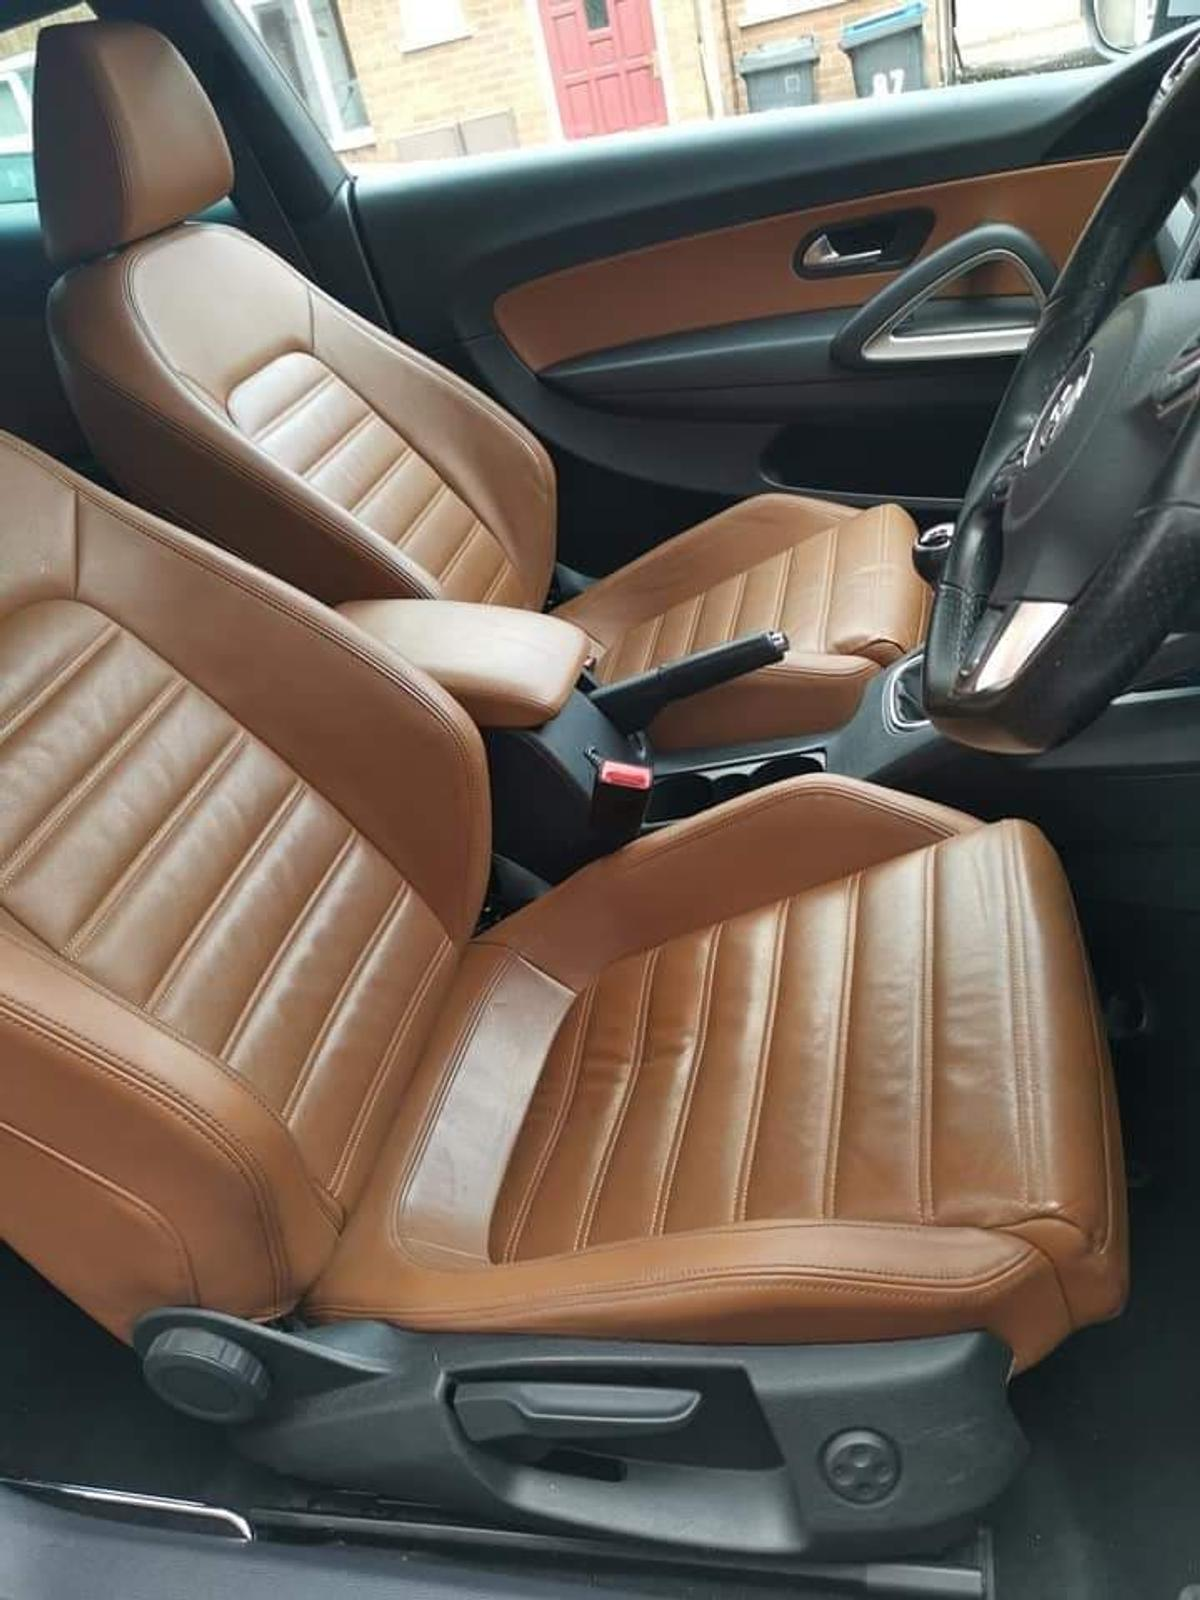 Vw Scirocco With Tan Leather Interior In Le9 Bosworth For